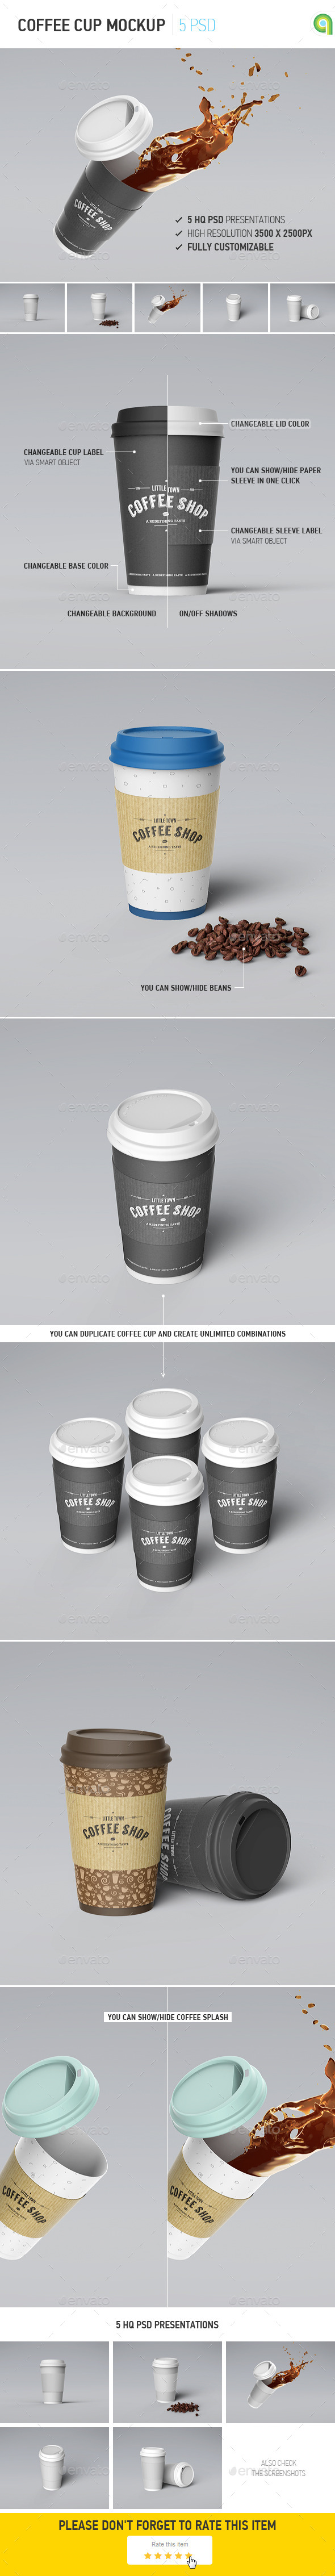 GraphicRiver Coffee Cup Mockup 10013207